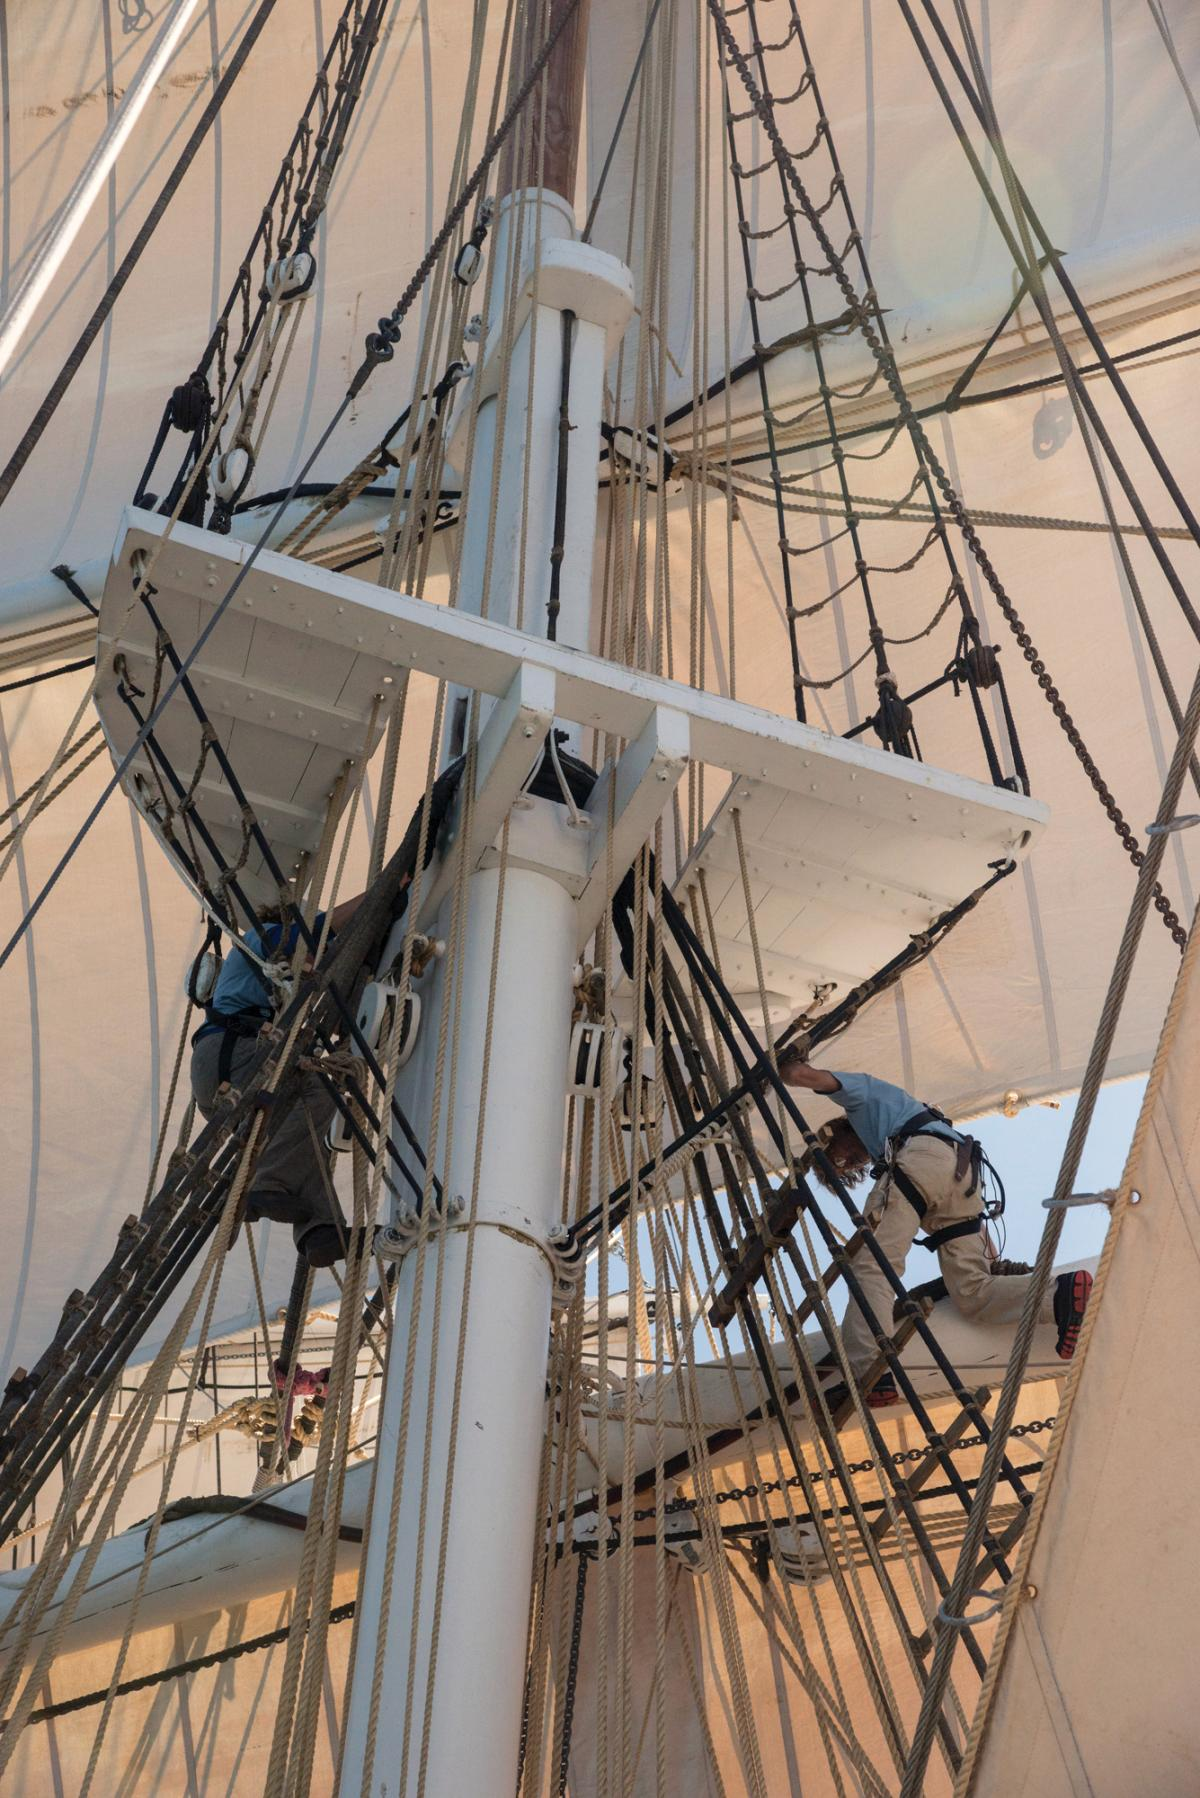 Deckhands climb up into the ropes of the rigging